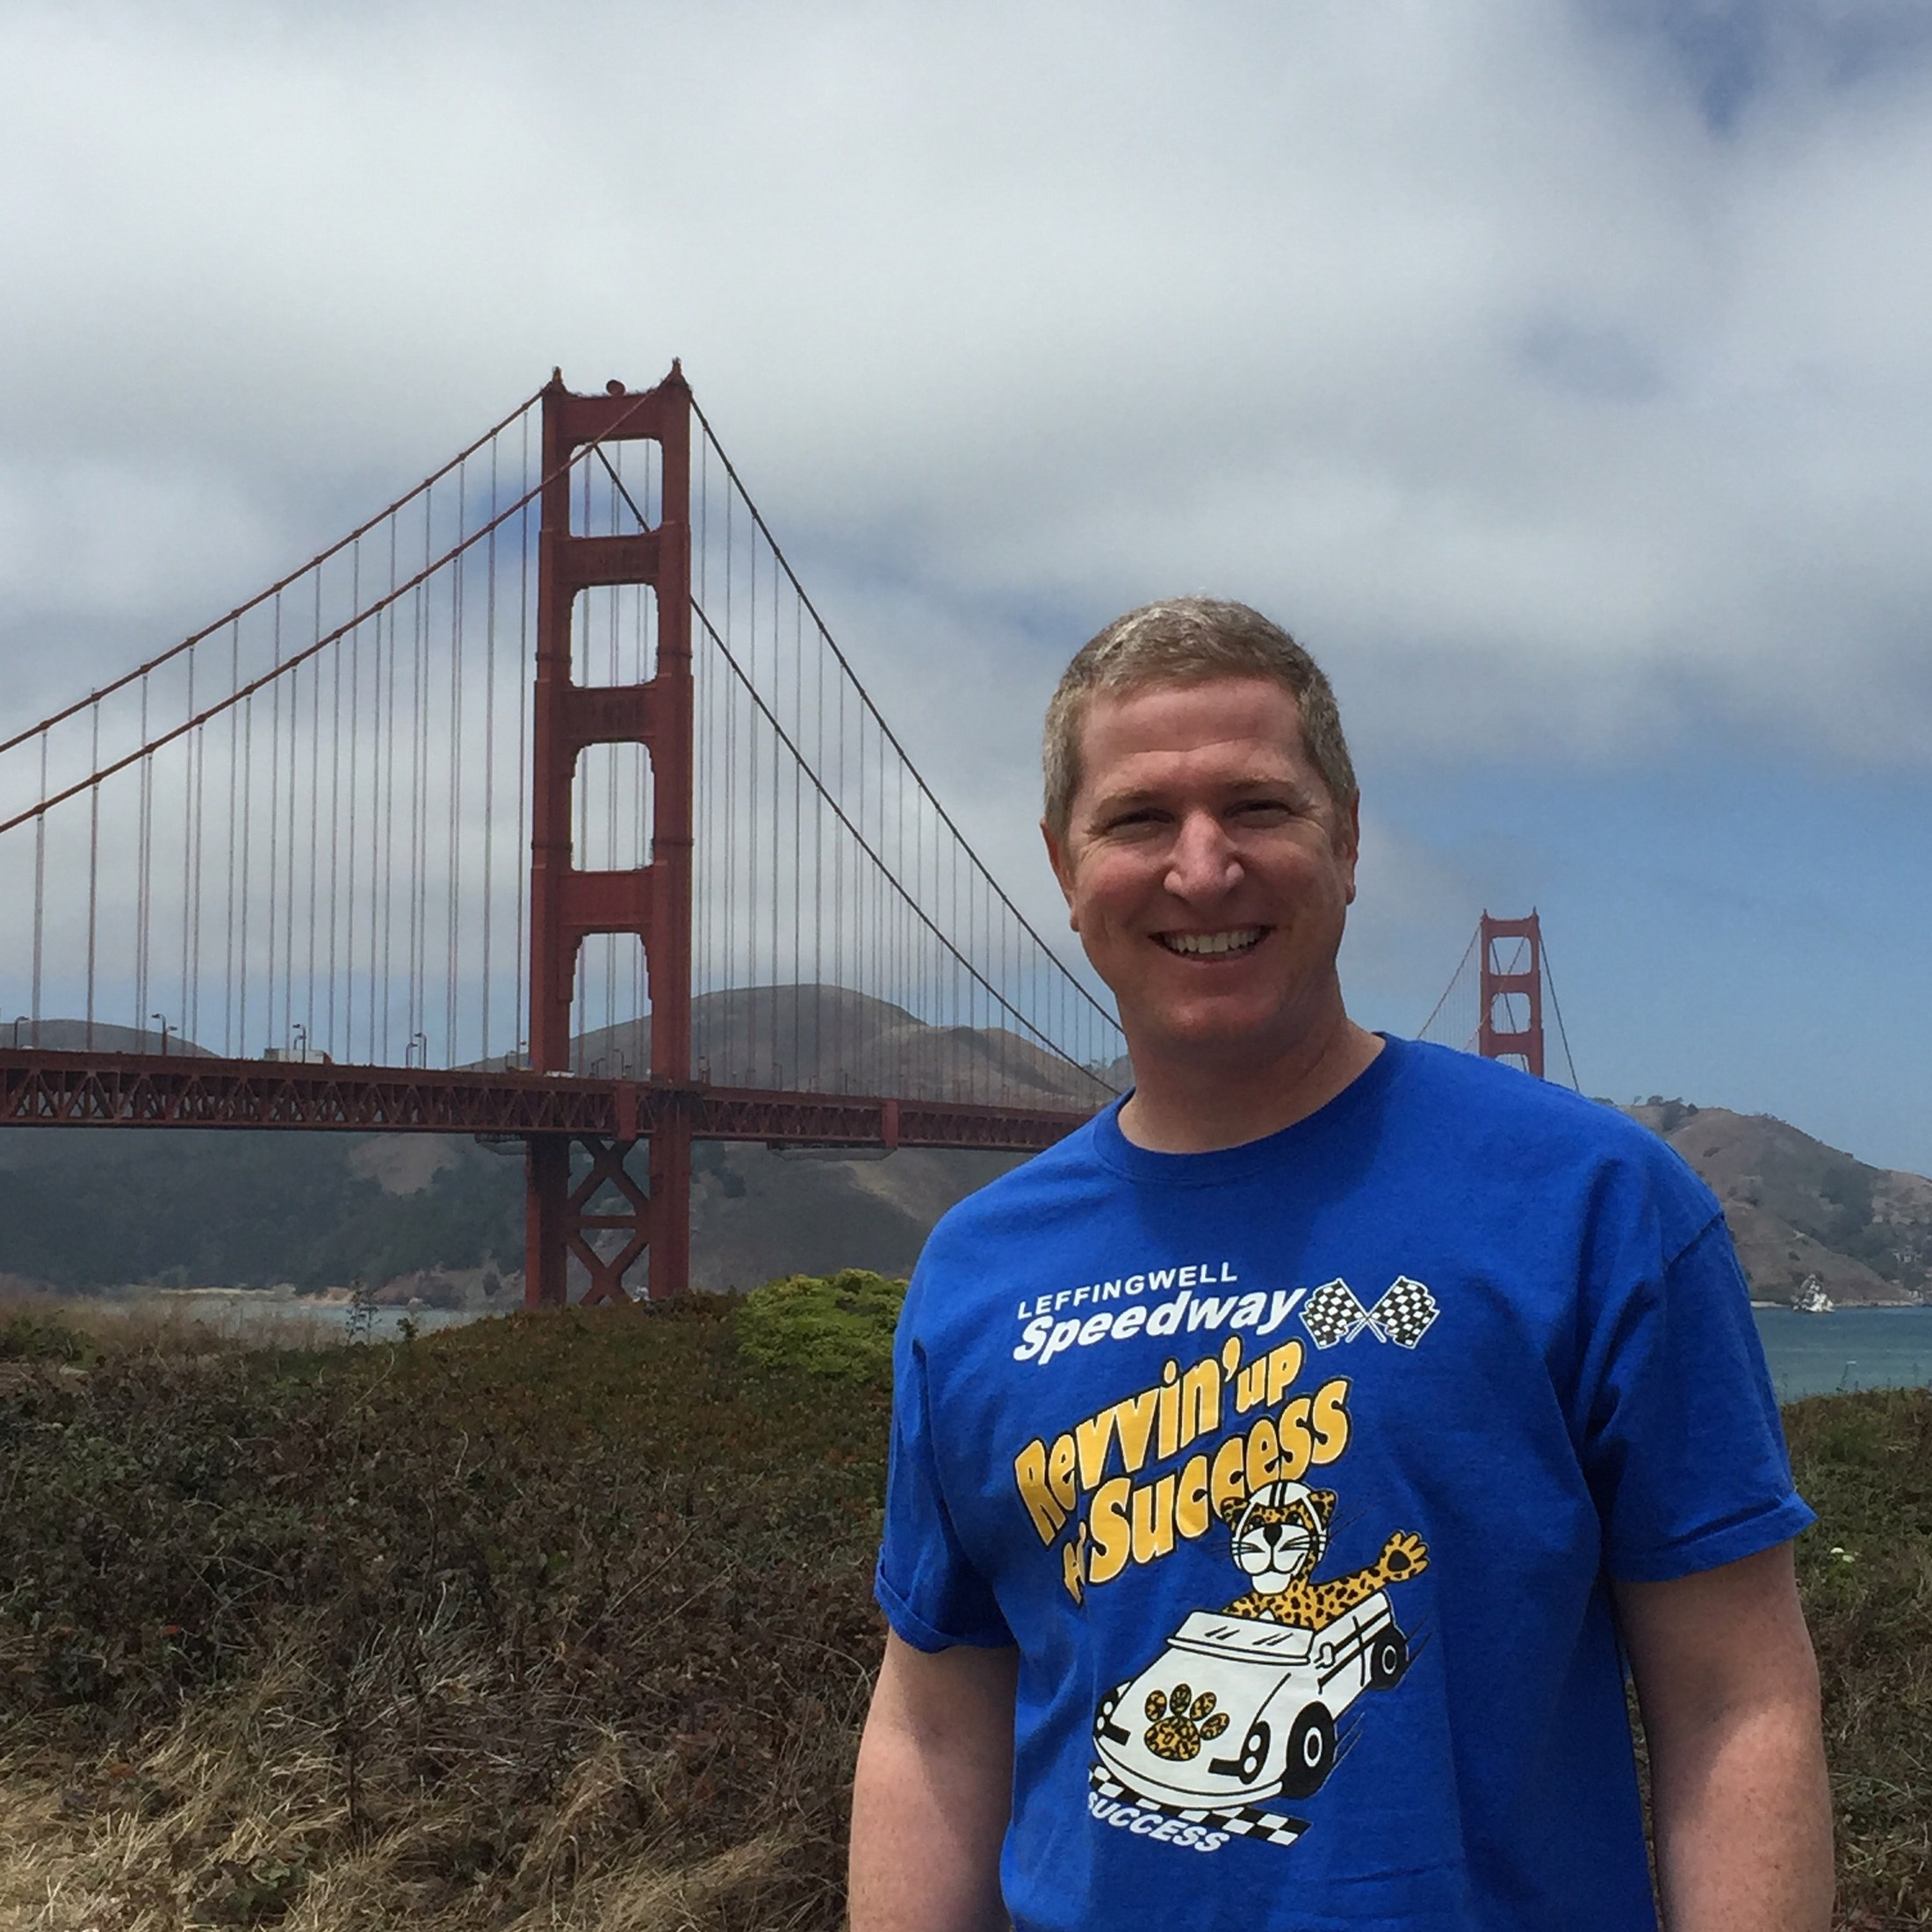 Dr. Blackwell at the Golden Gate Bridge